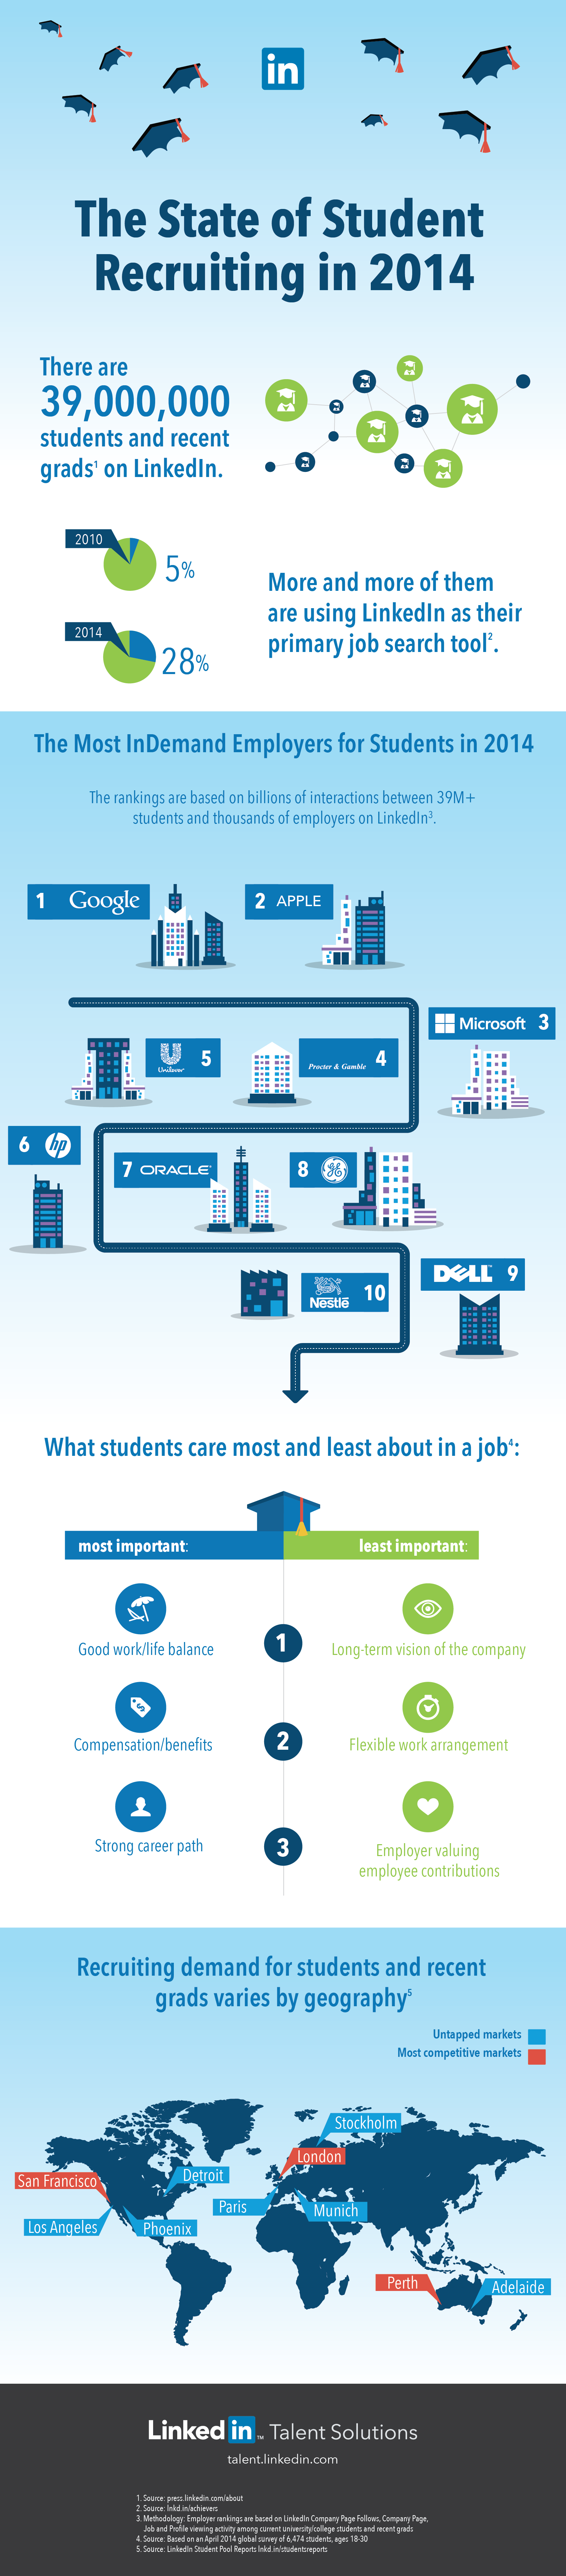 the most indemand students for employees infographic